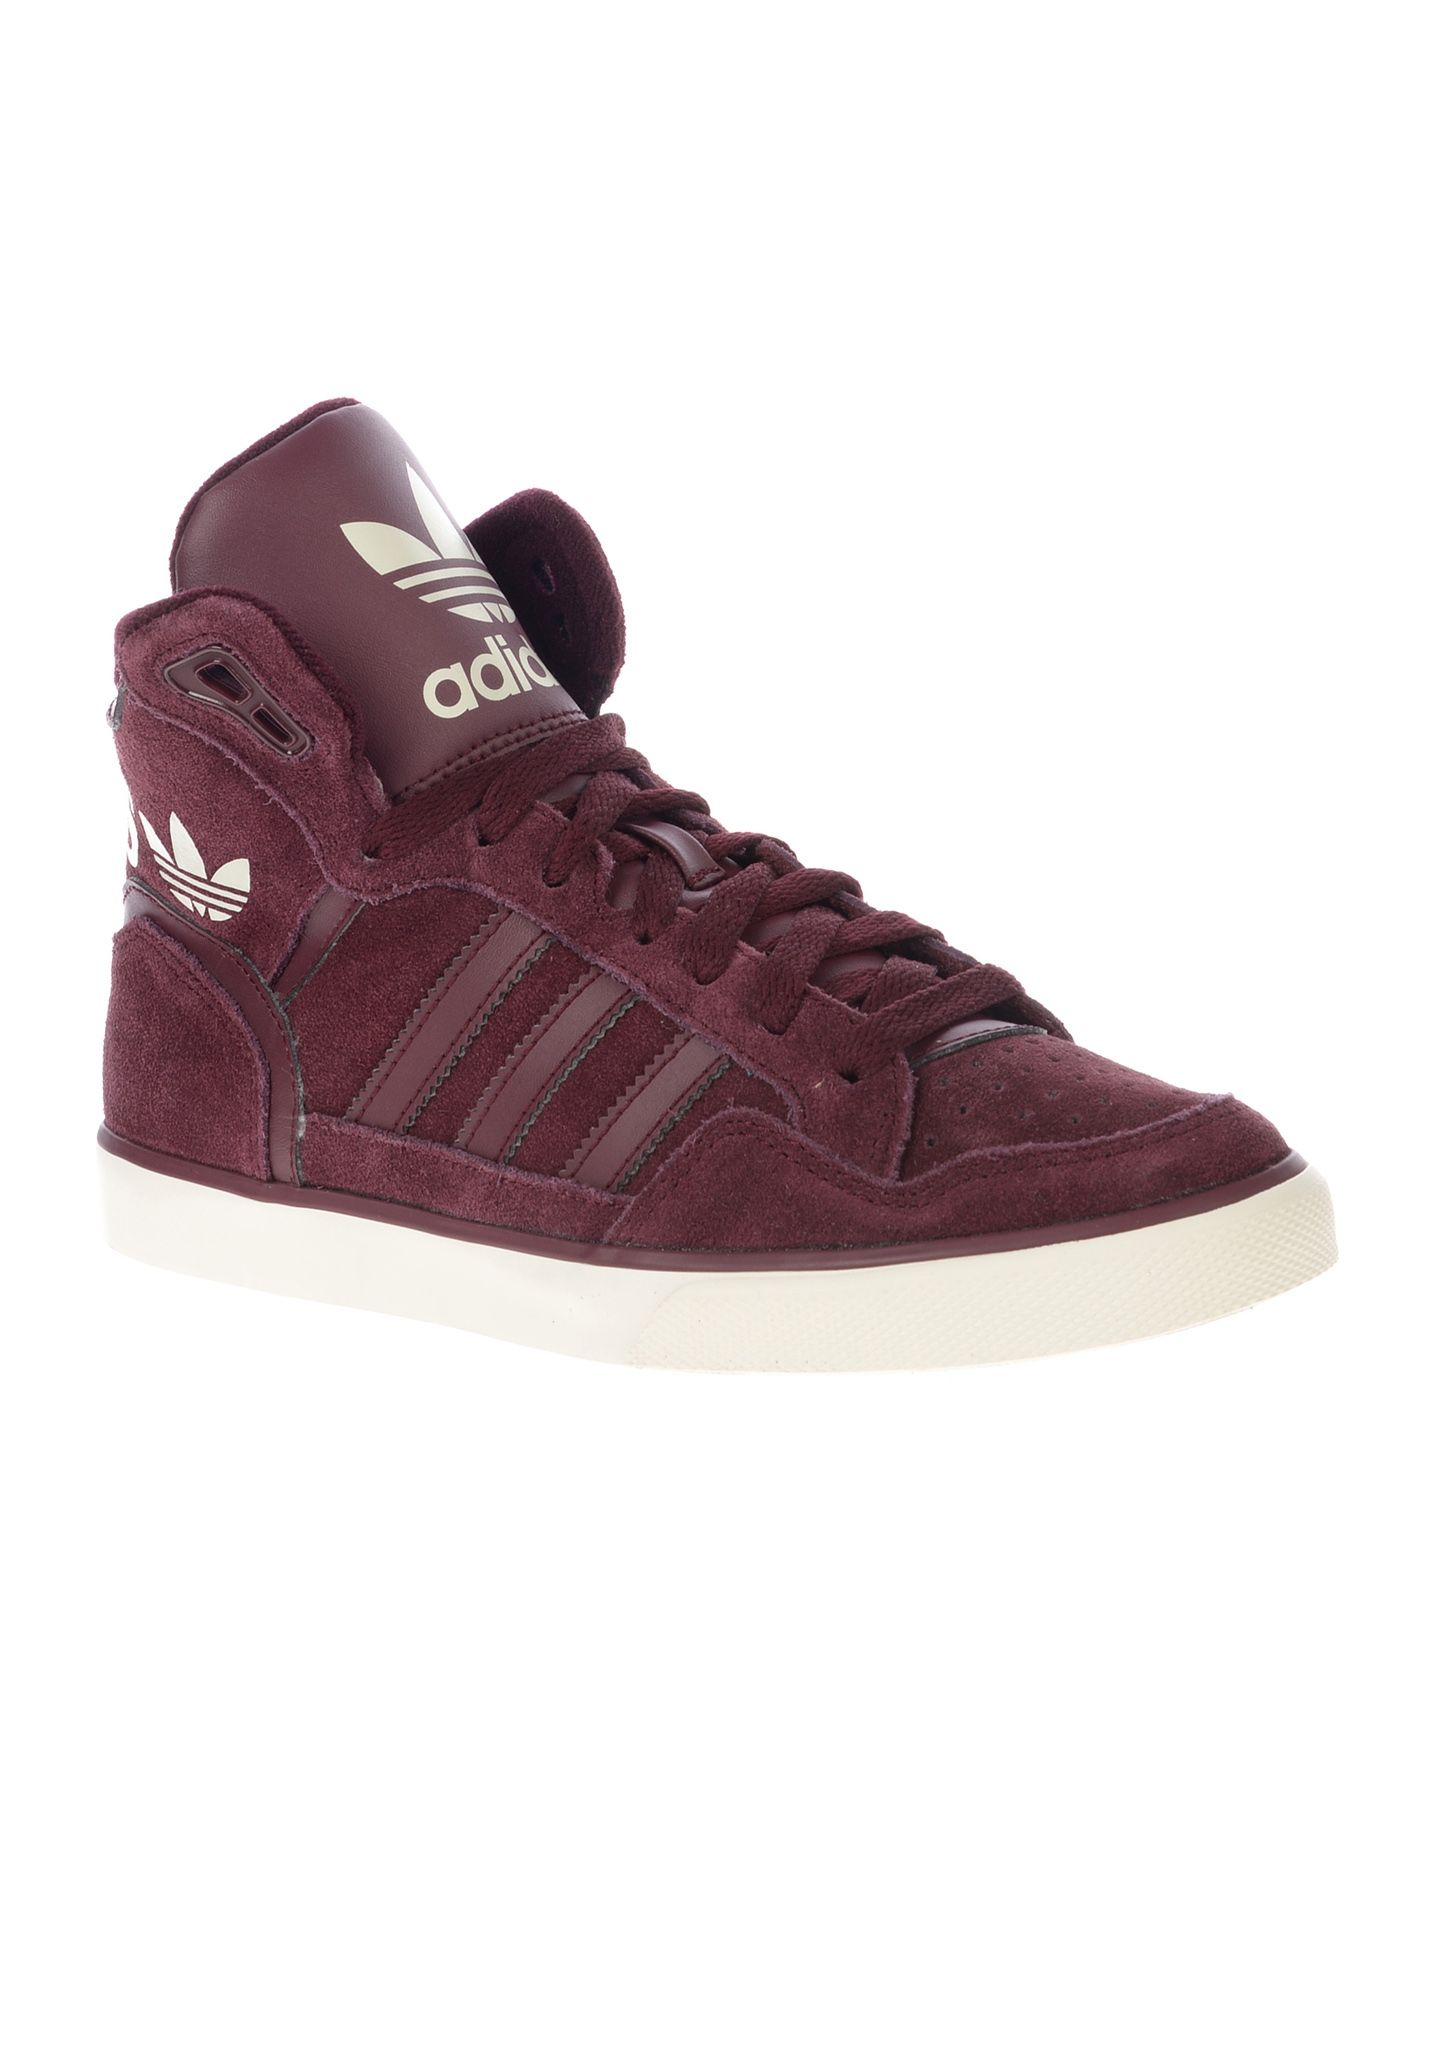 90ce8c83eb ... best service a4f10 0a0c3 ADIDAS Extaball Boot W - Baskets pour Femme -  Rouge - Planet